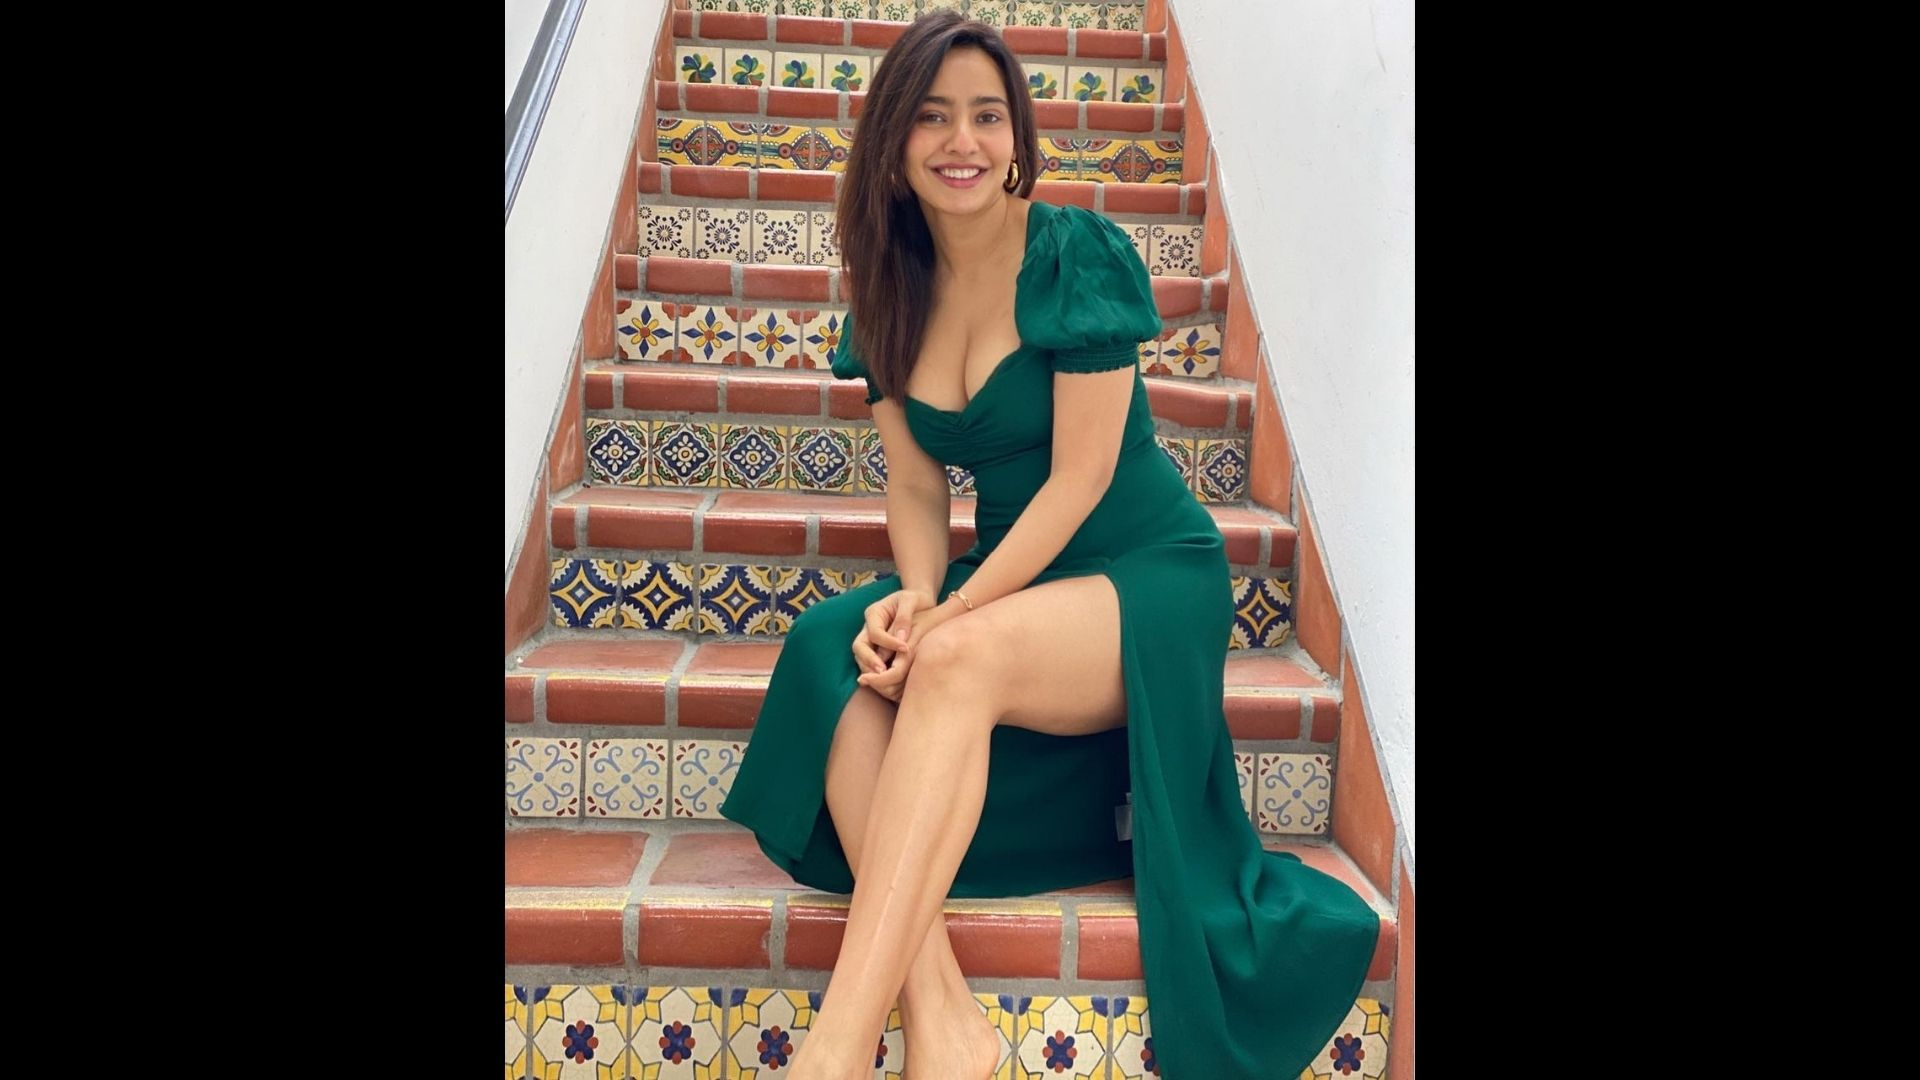 Aafat-E-Ishq: Leading Lady Neha Sharma's Top 5 Sultry Pictures That Will You Weak In The Knees